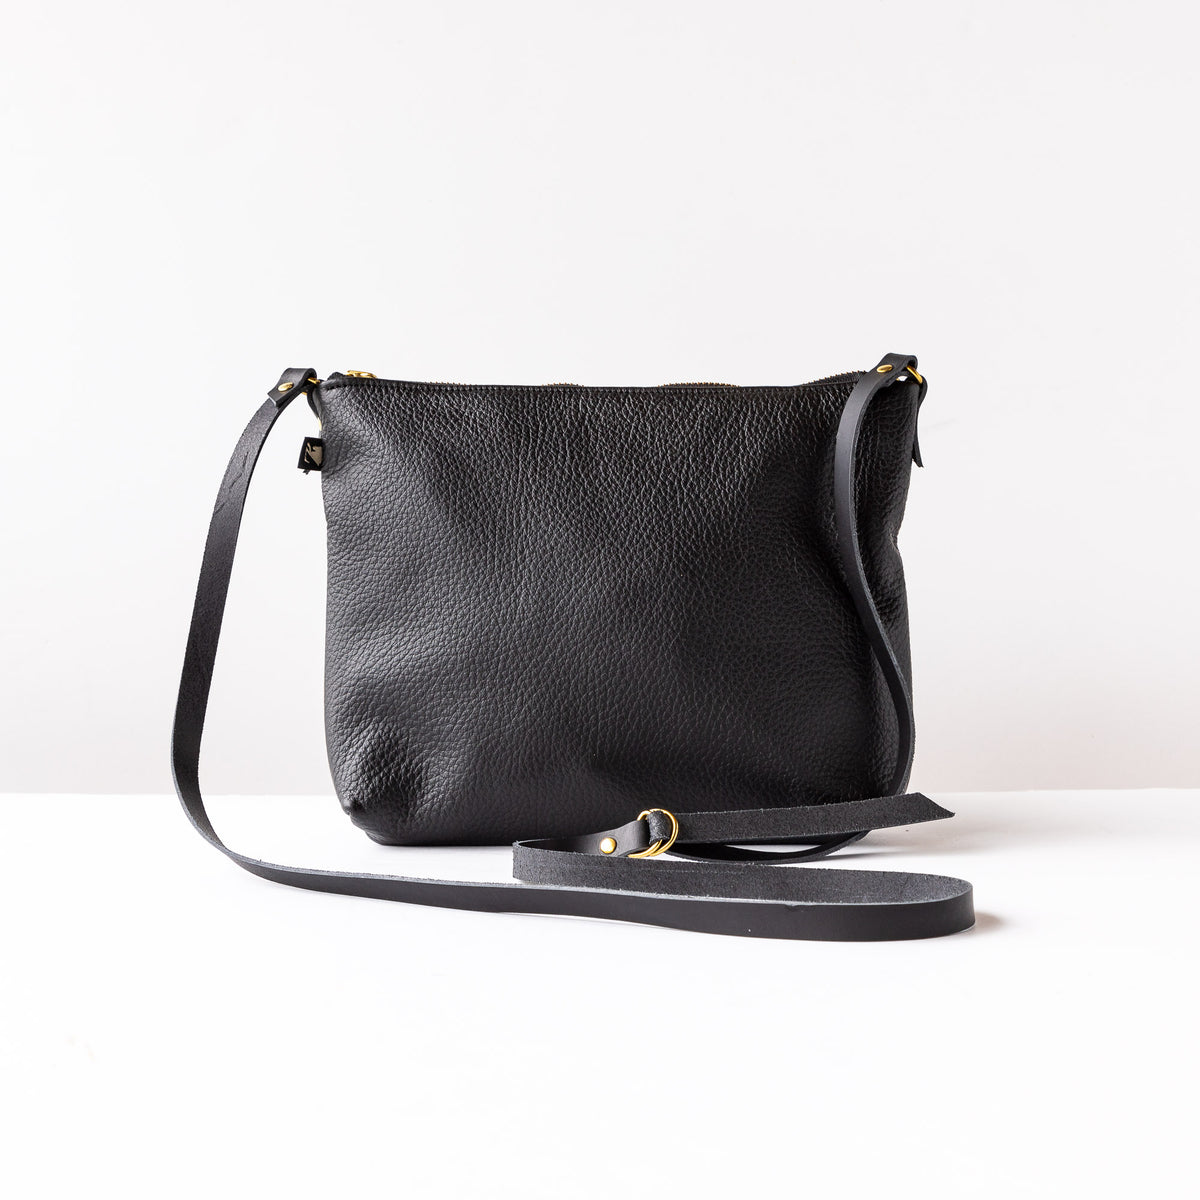 Rear View - Woodstock / Mauve Leather & Black Leather - Small Bag - Sold by Chic & Basta